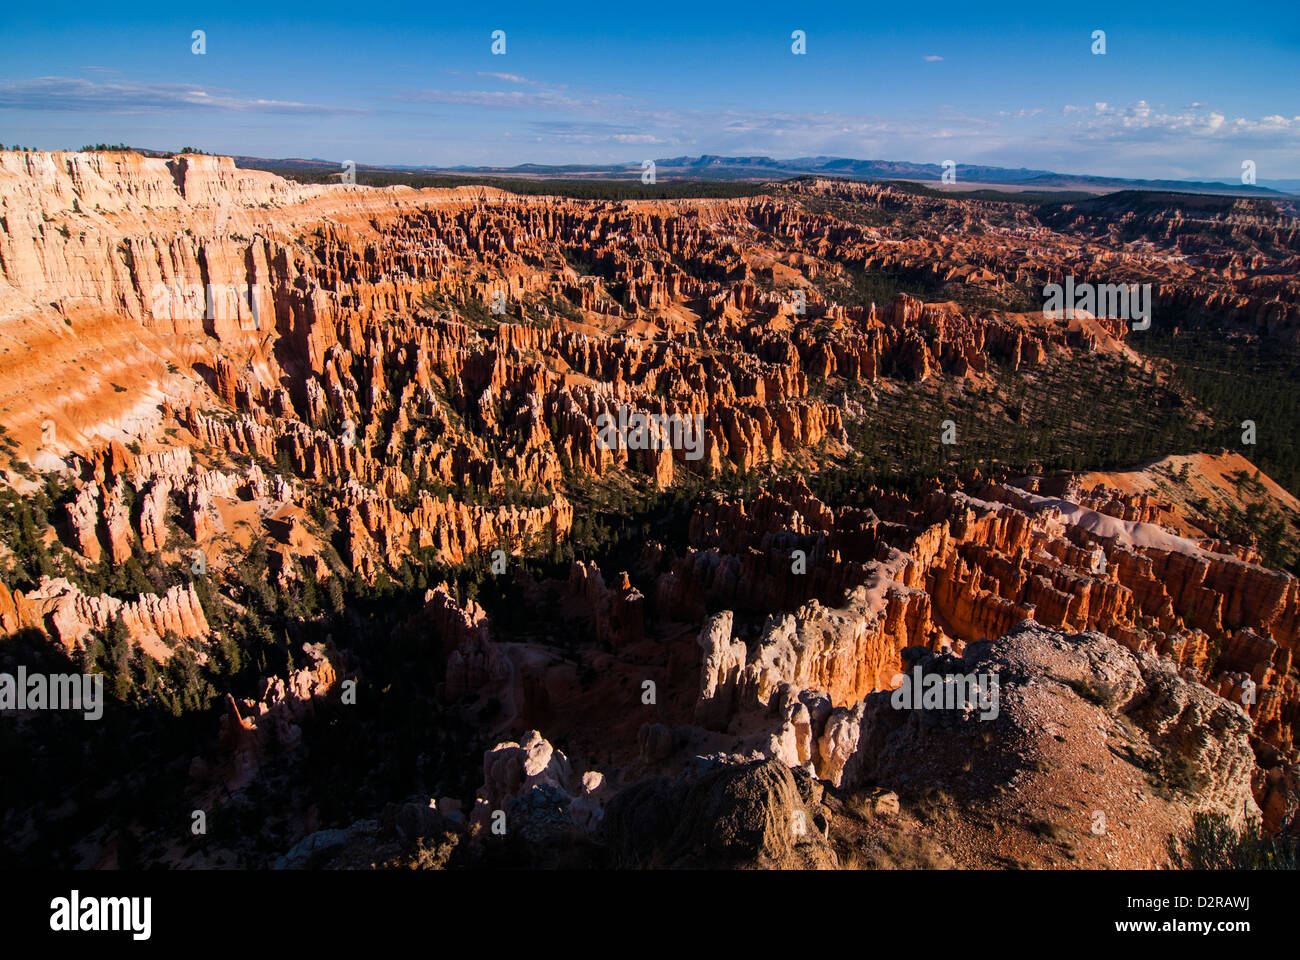 Outlook for the pinnacles in the beautiful rock formations of Bryce Canyon National Park, Utah, USA - Stock Image